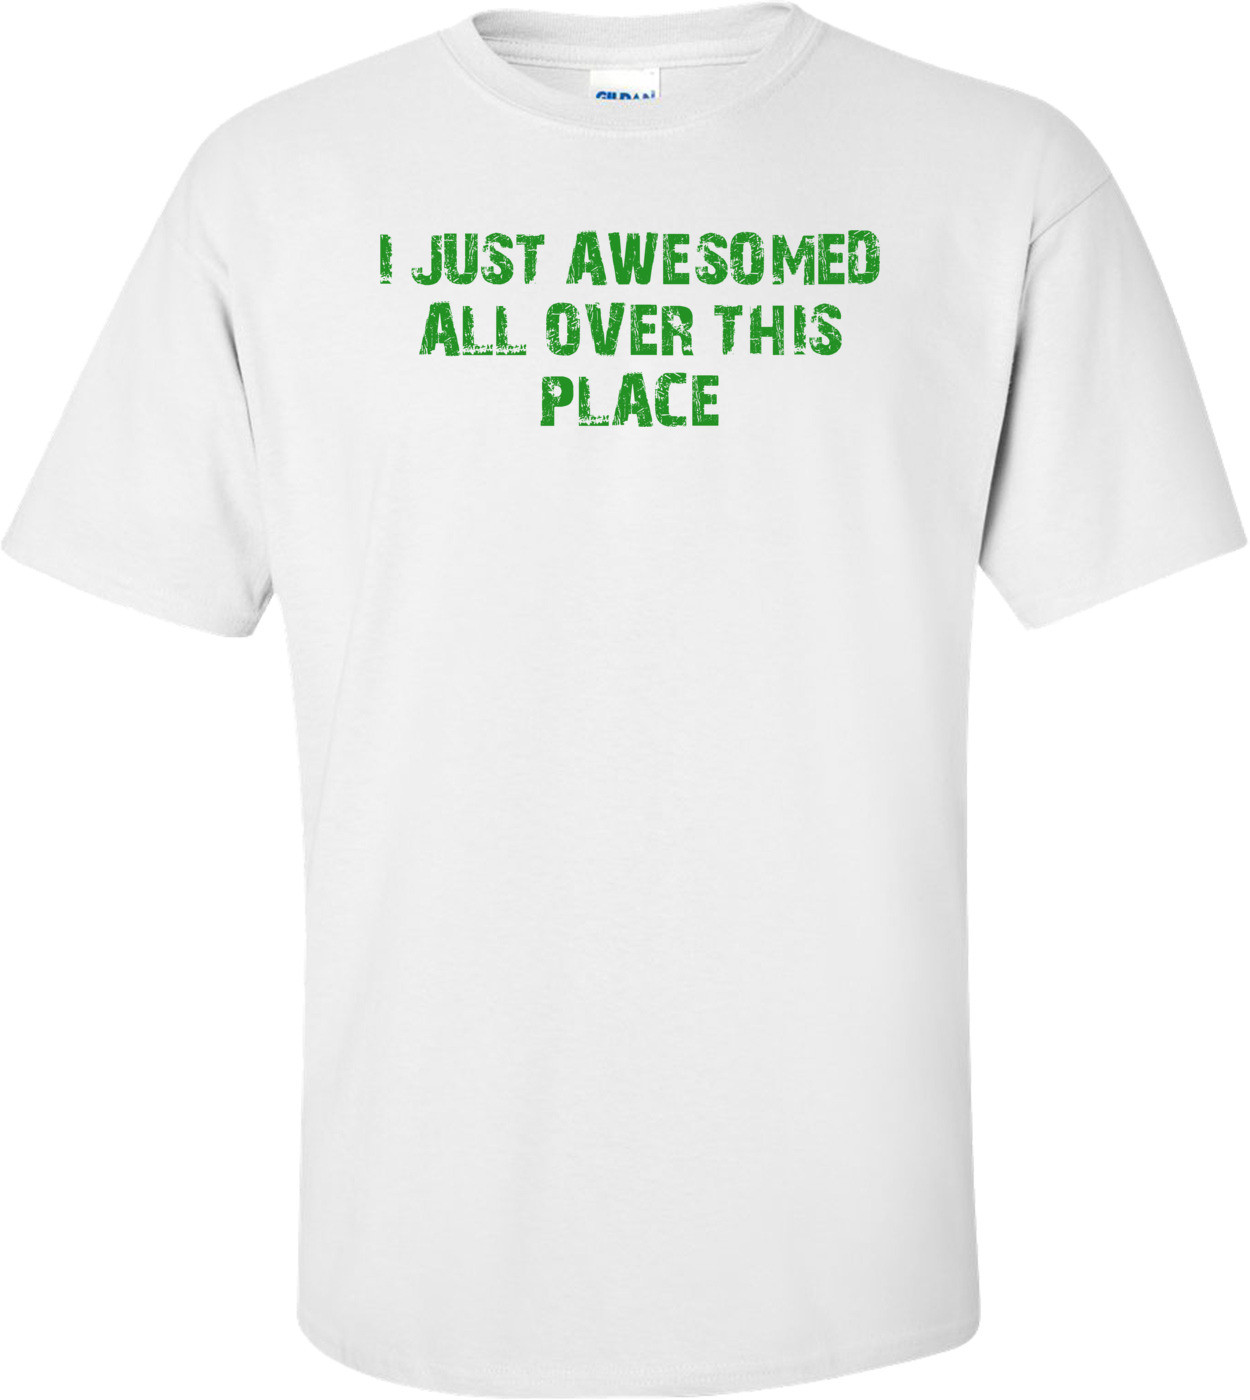 I JUST AWESOMED ALL OVER THIS PLACE Shirt